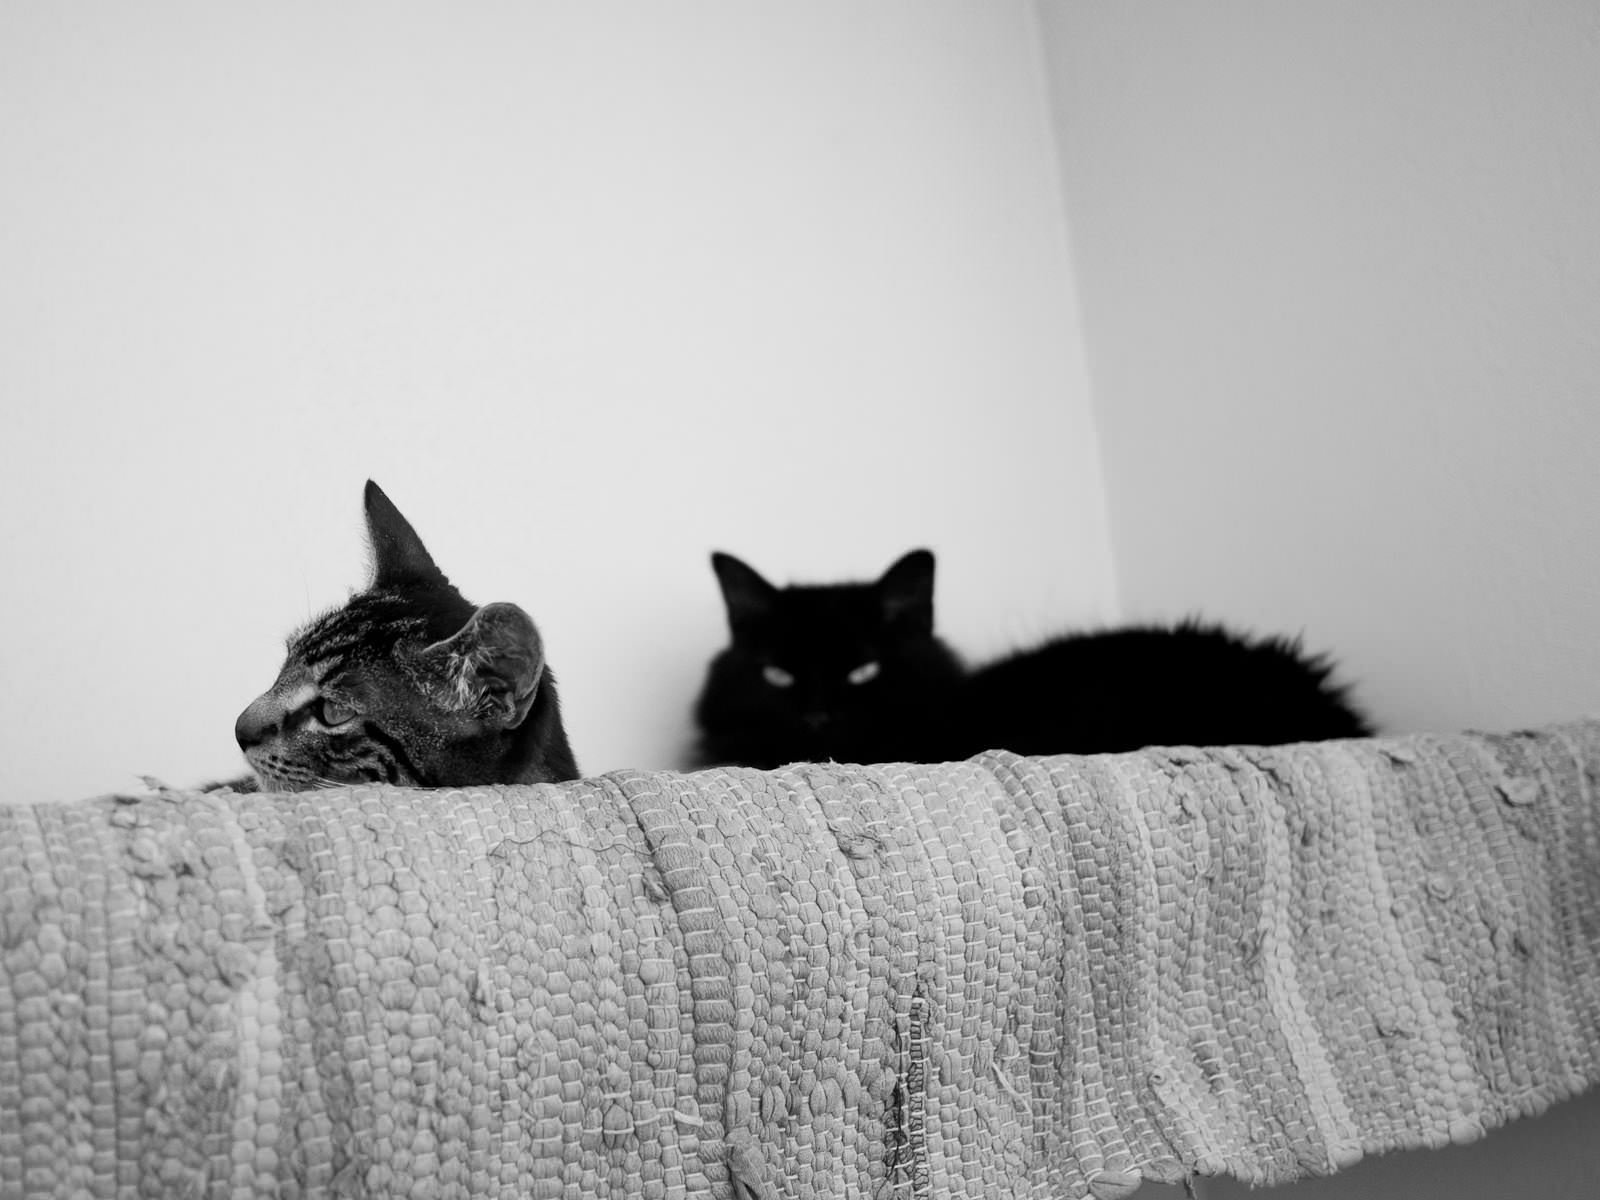 Truffle and Pixel are getting on well, but Pixel's always on alert for kitten attacks